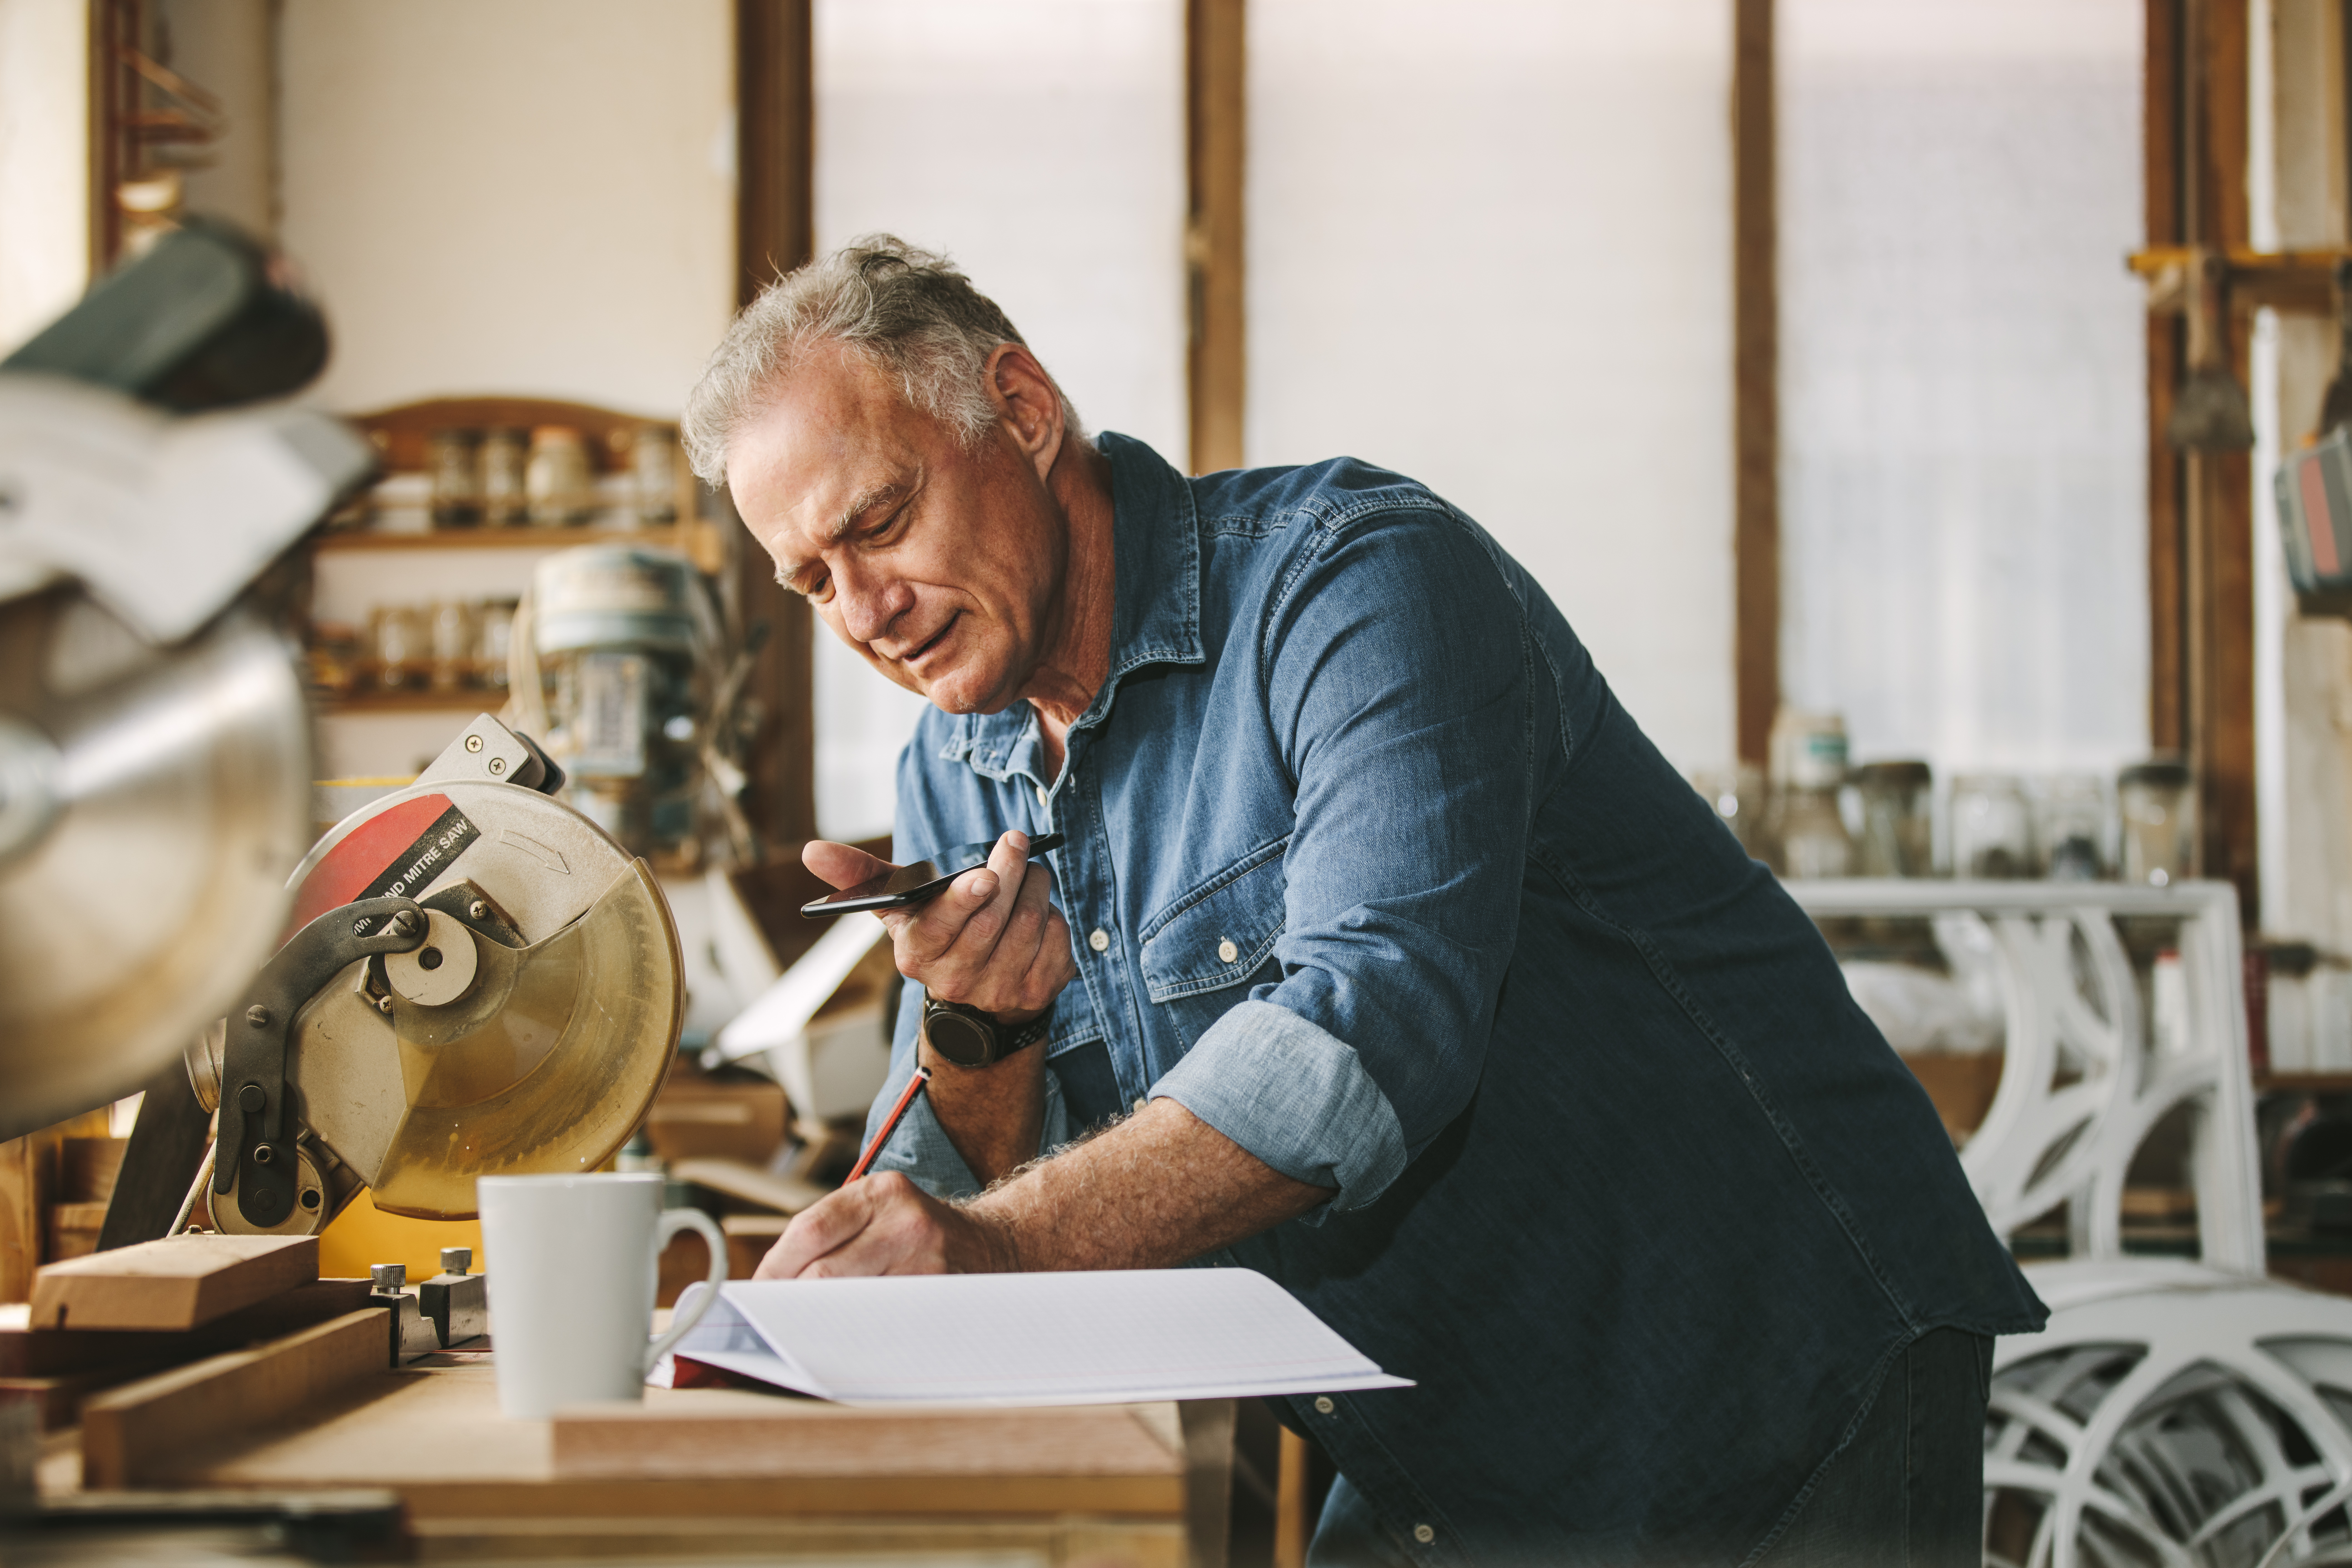 Senior carpenter working at his workshop while standing at desk using mobile phone and writing in a book. Mature man working in carpentry workshop.